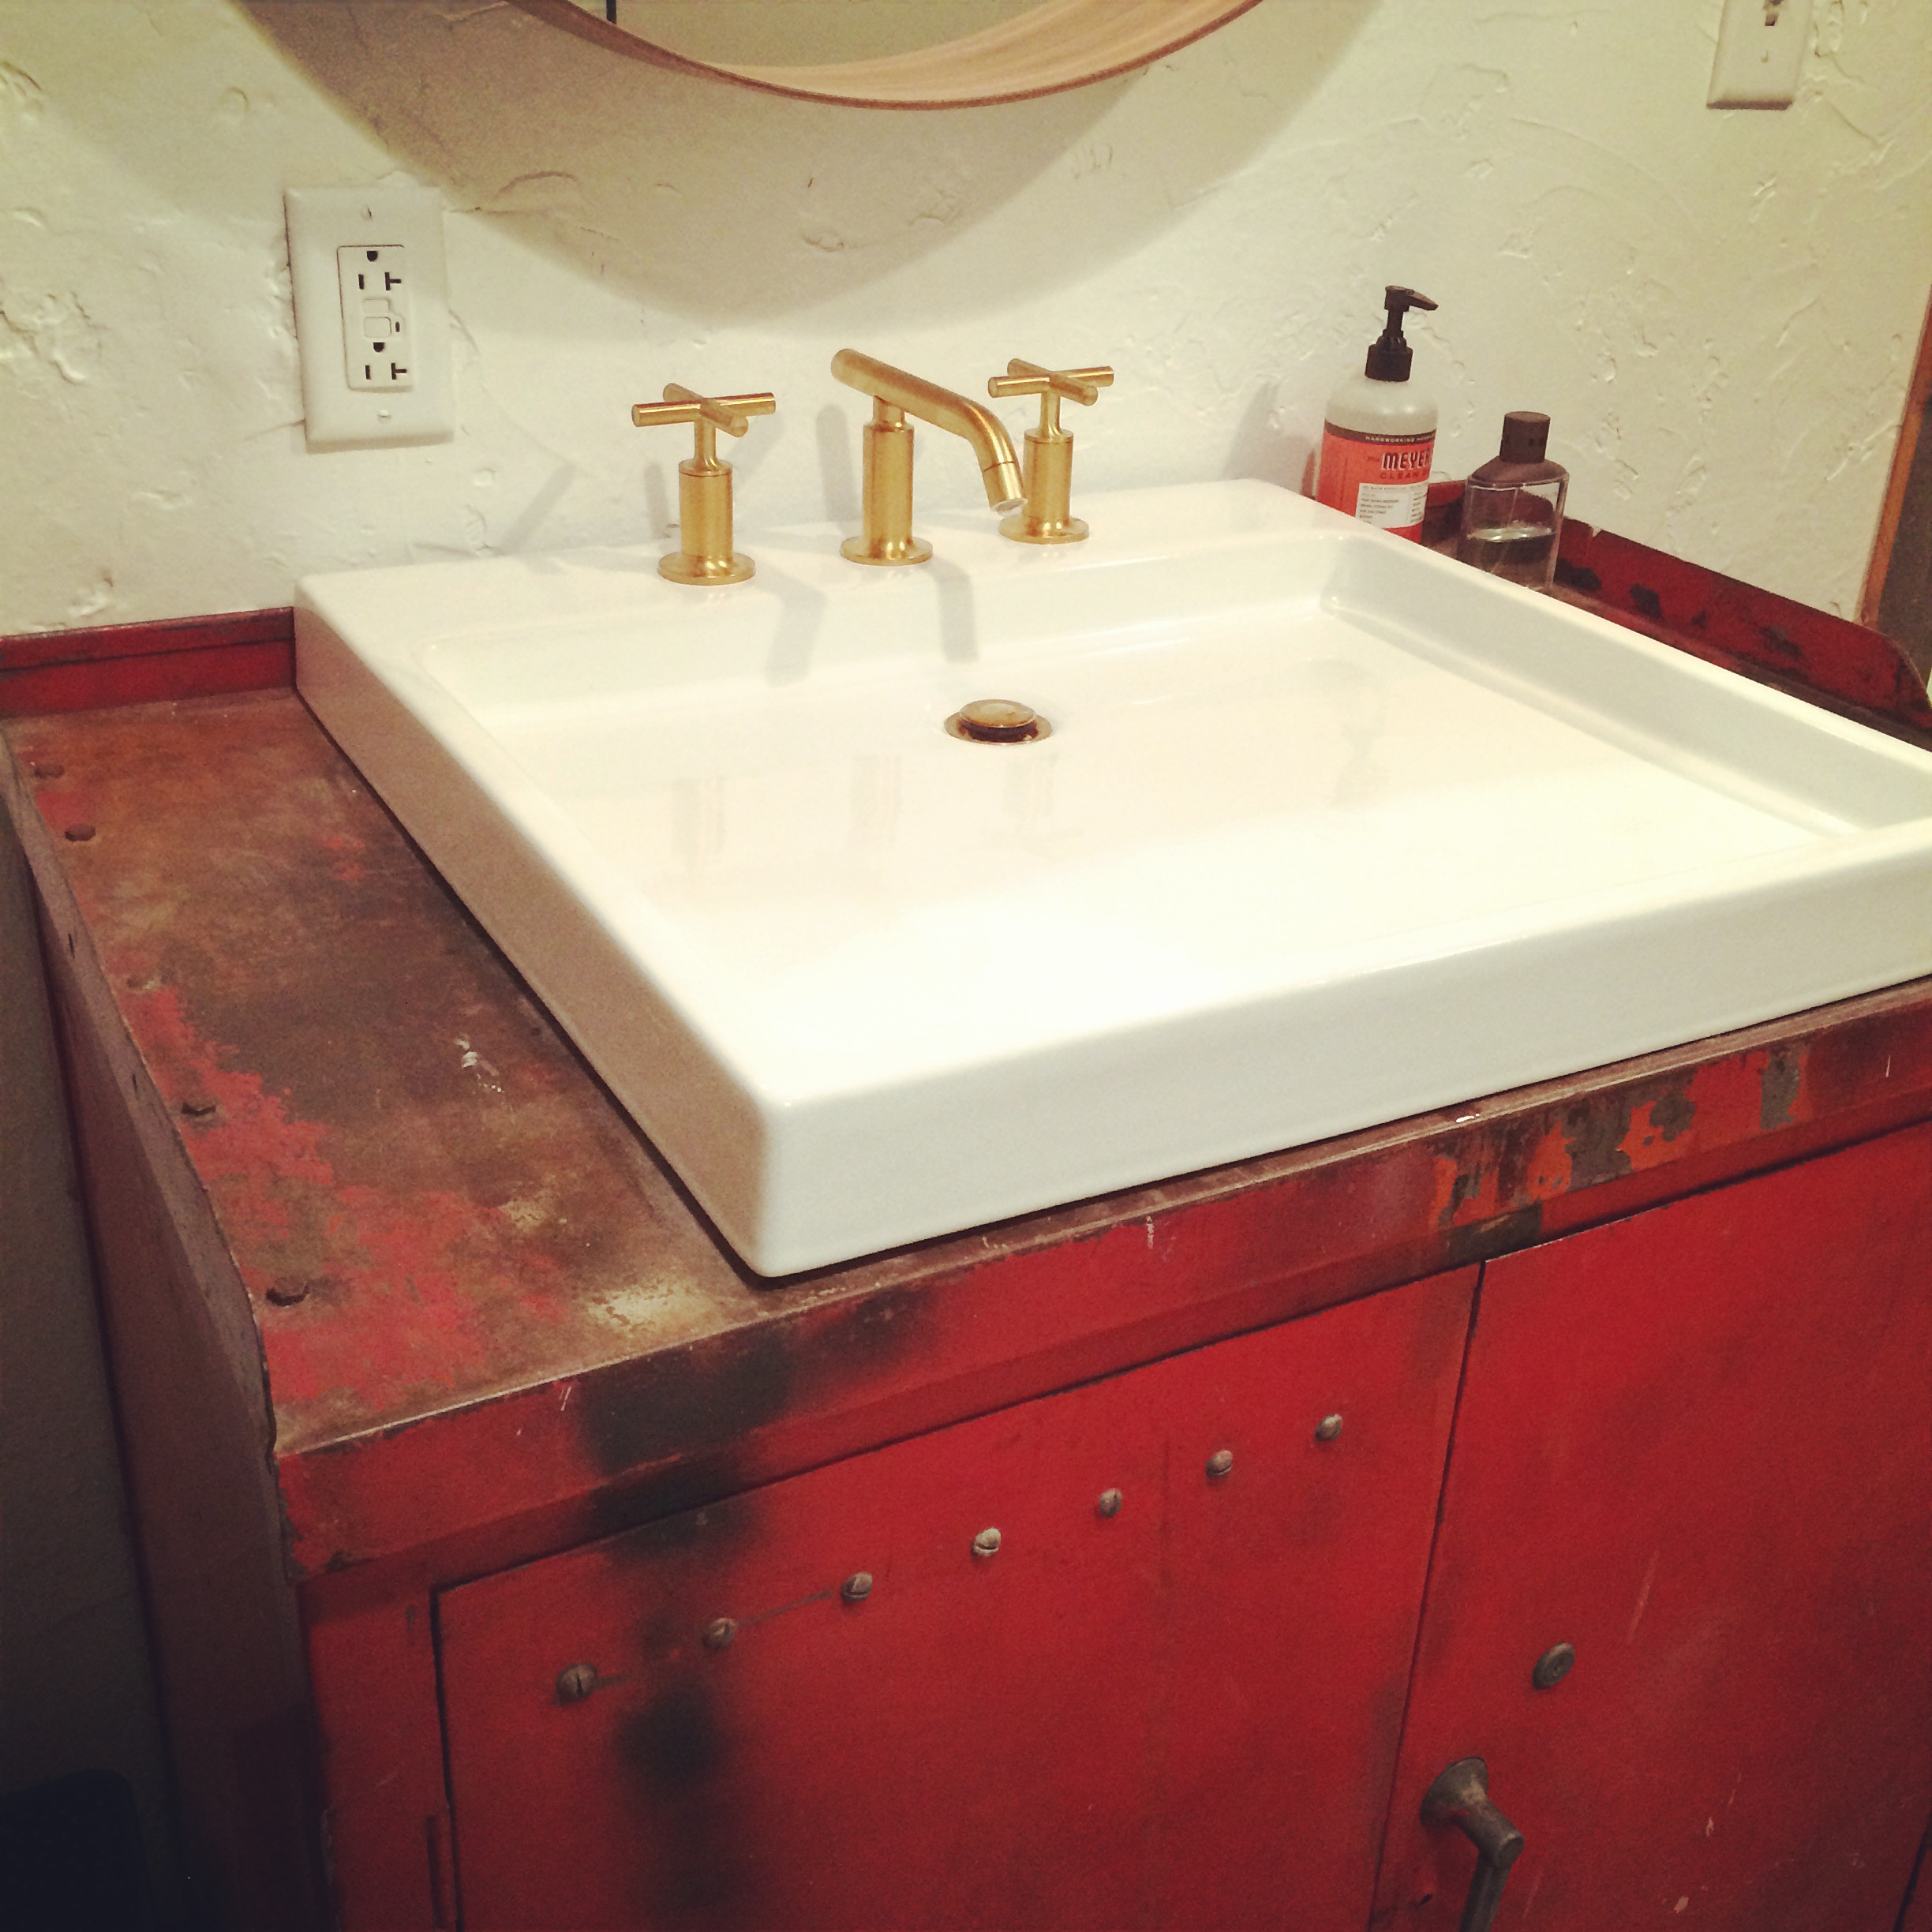 AFTER | Plumbing Company | Owner's Restroom